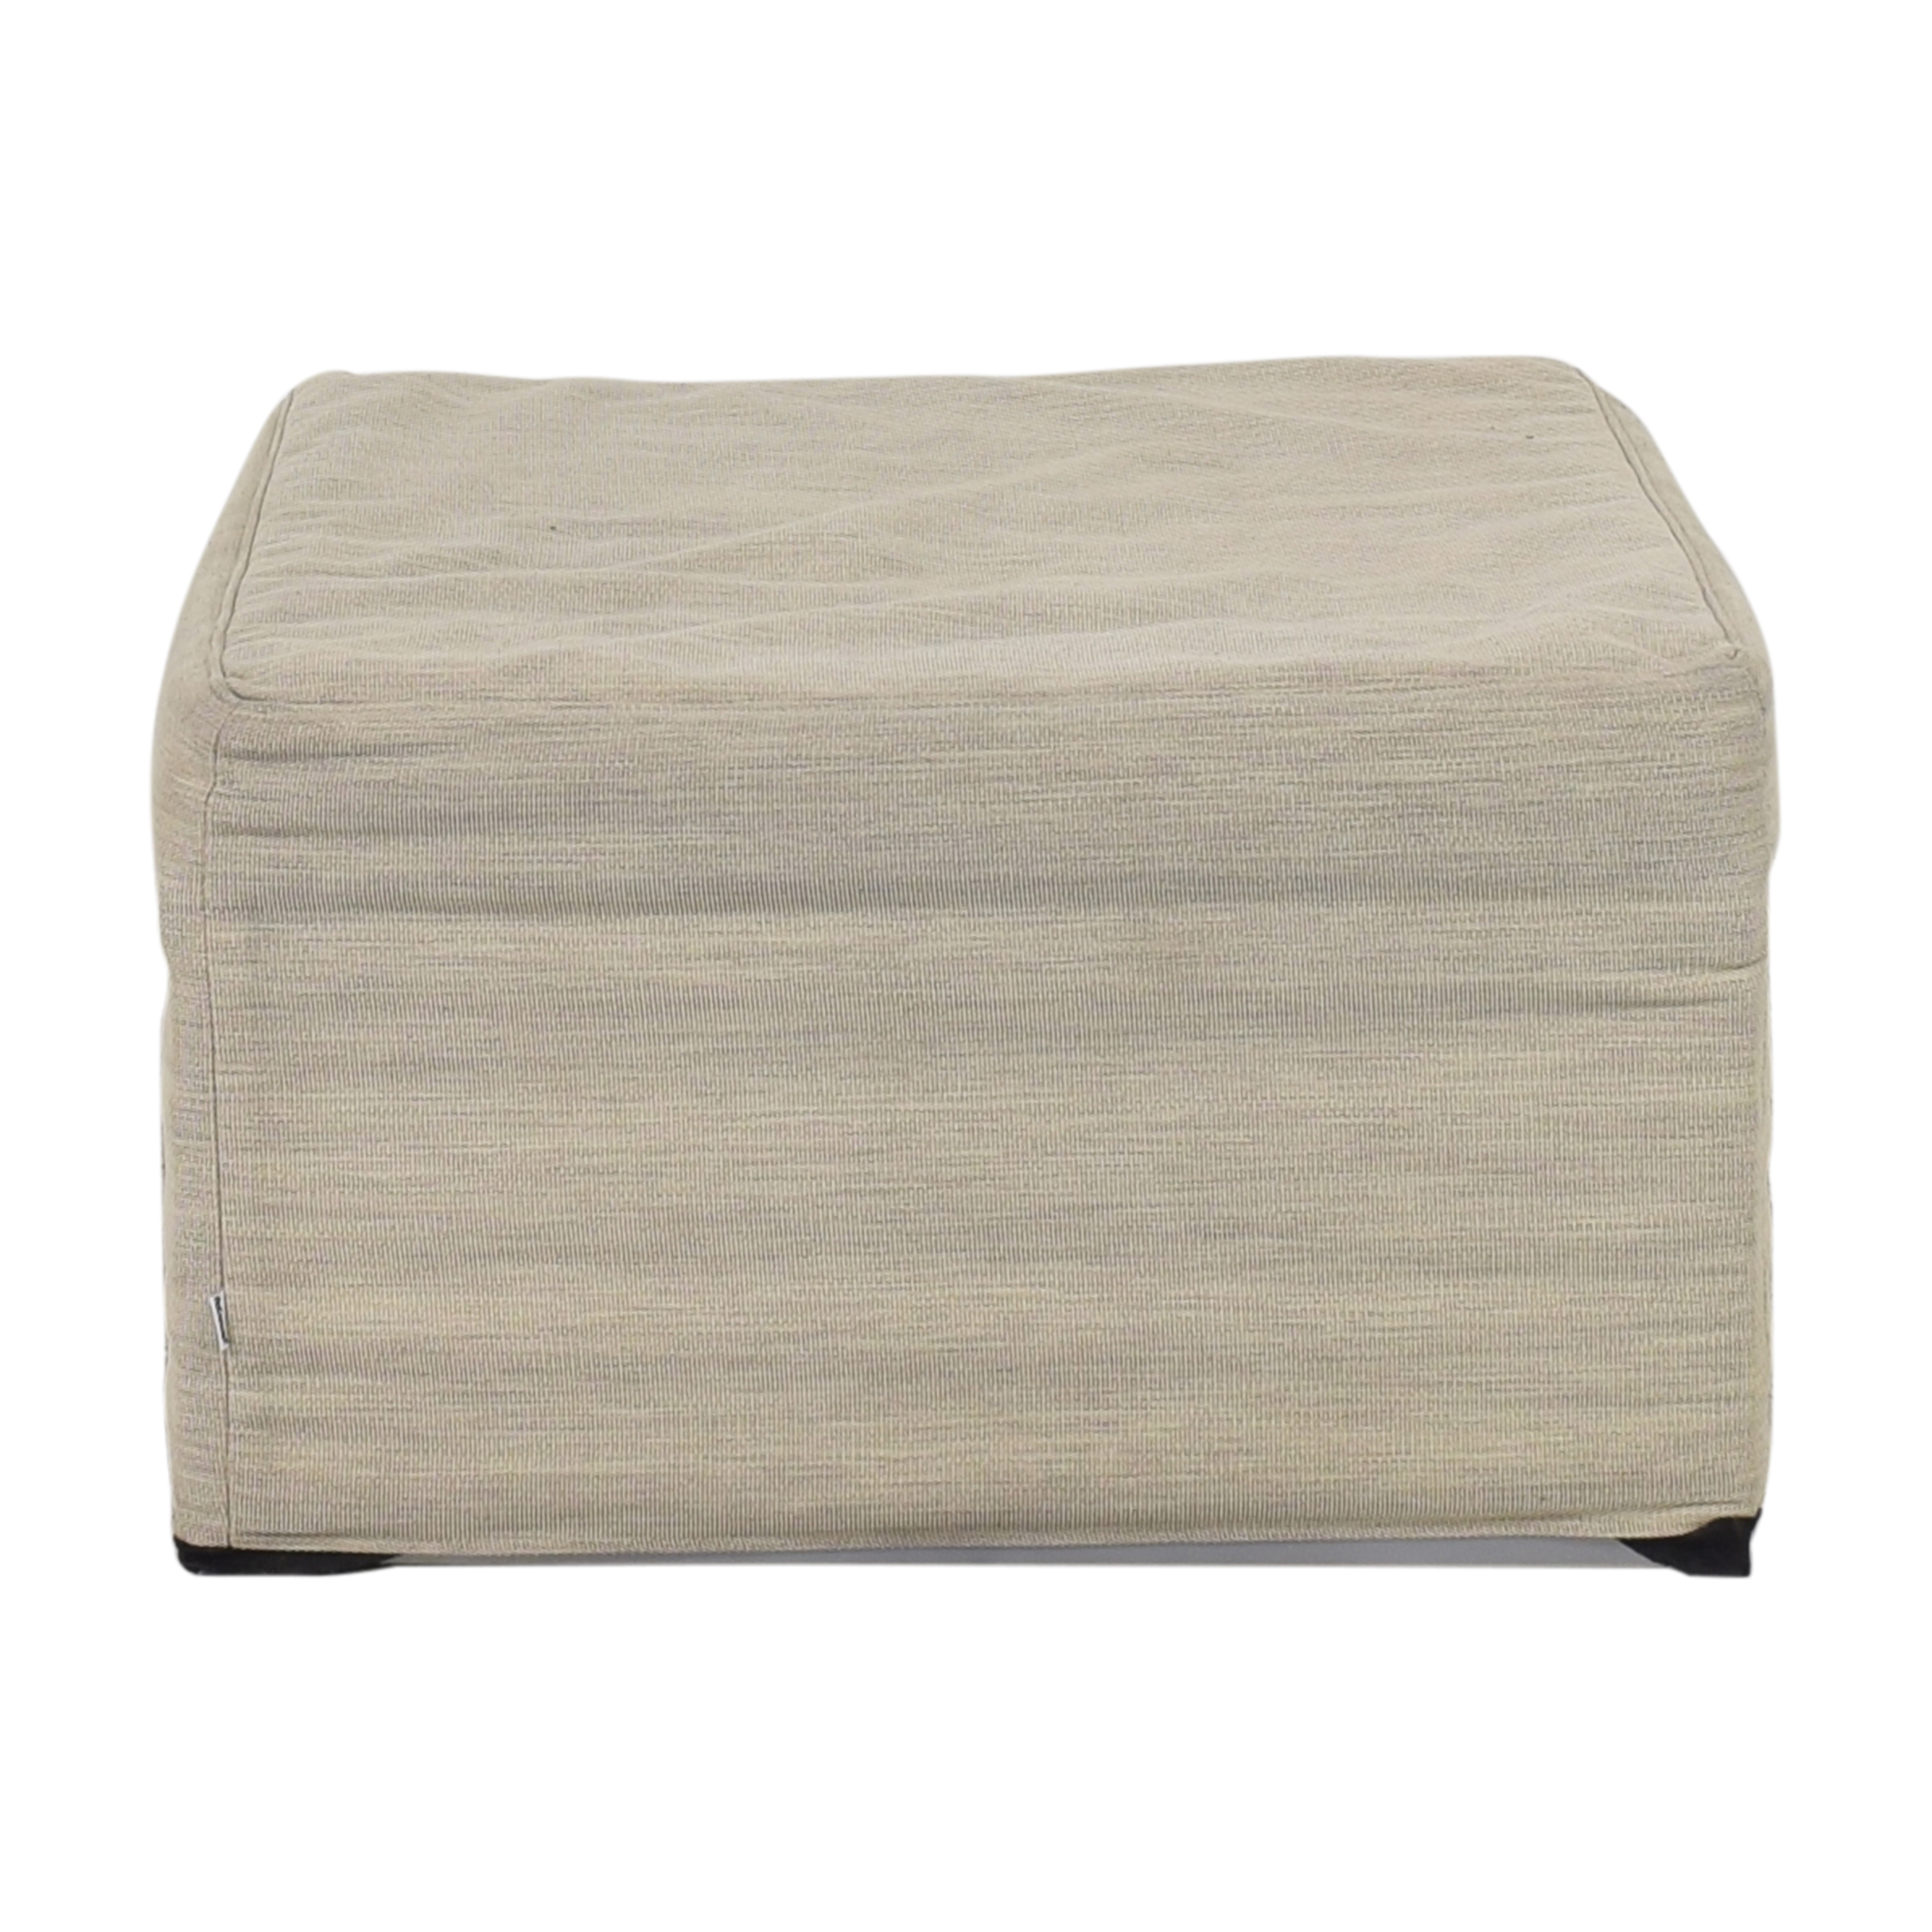 BoConcept BoConcept Xtra Footstool with Sleeping Function Ottomans